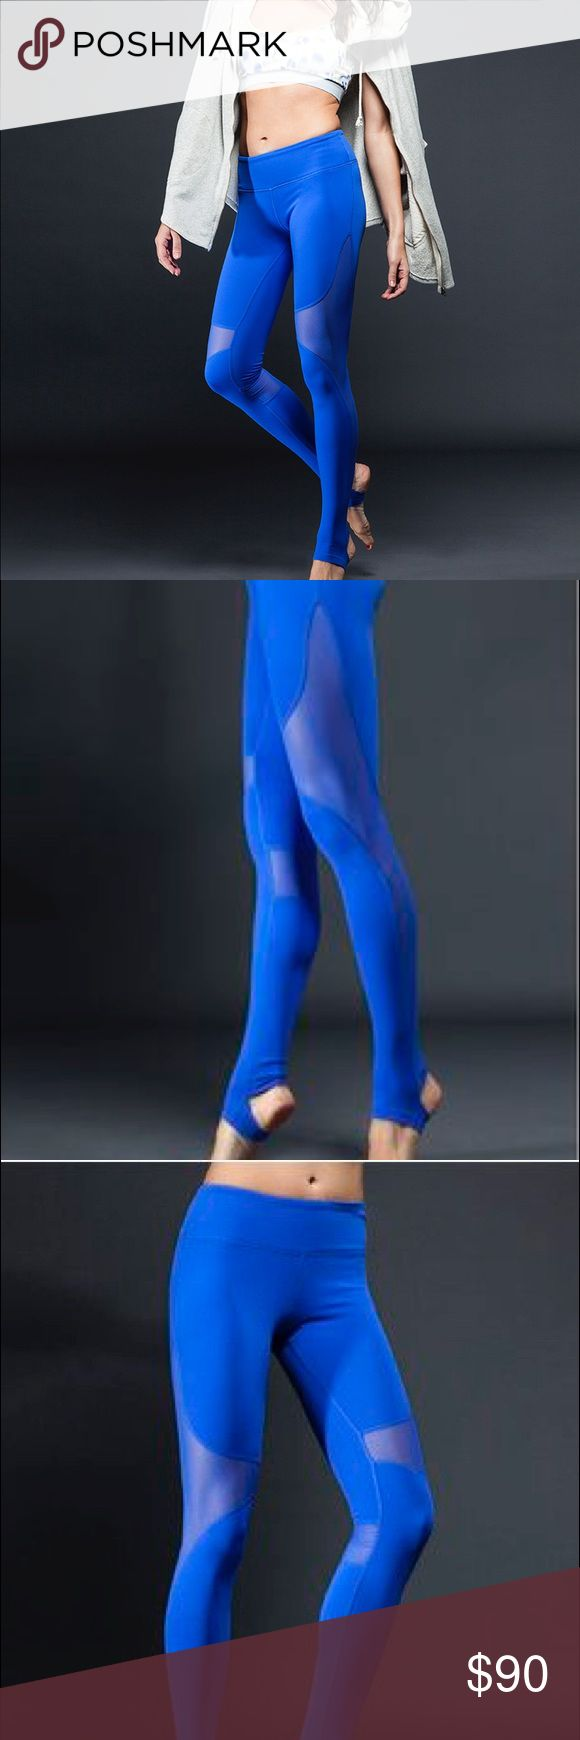 Alo yoga electric blue mesh coast leggings Worn once and realized they don't fit me well. Stirrup legging not lululemon but I think quality is better! They keep everything in and lifted lululemon athletica Pants Leggings